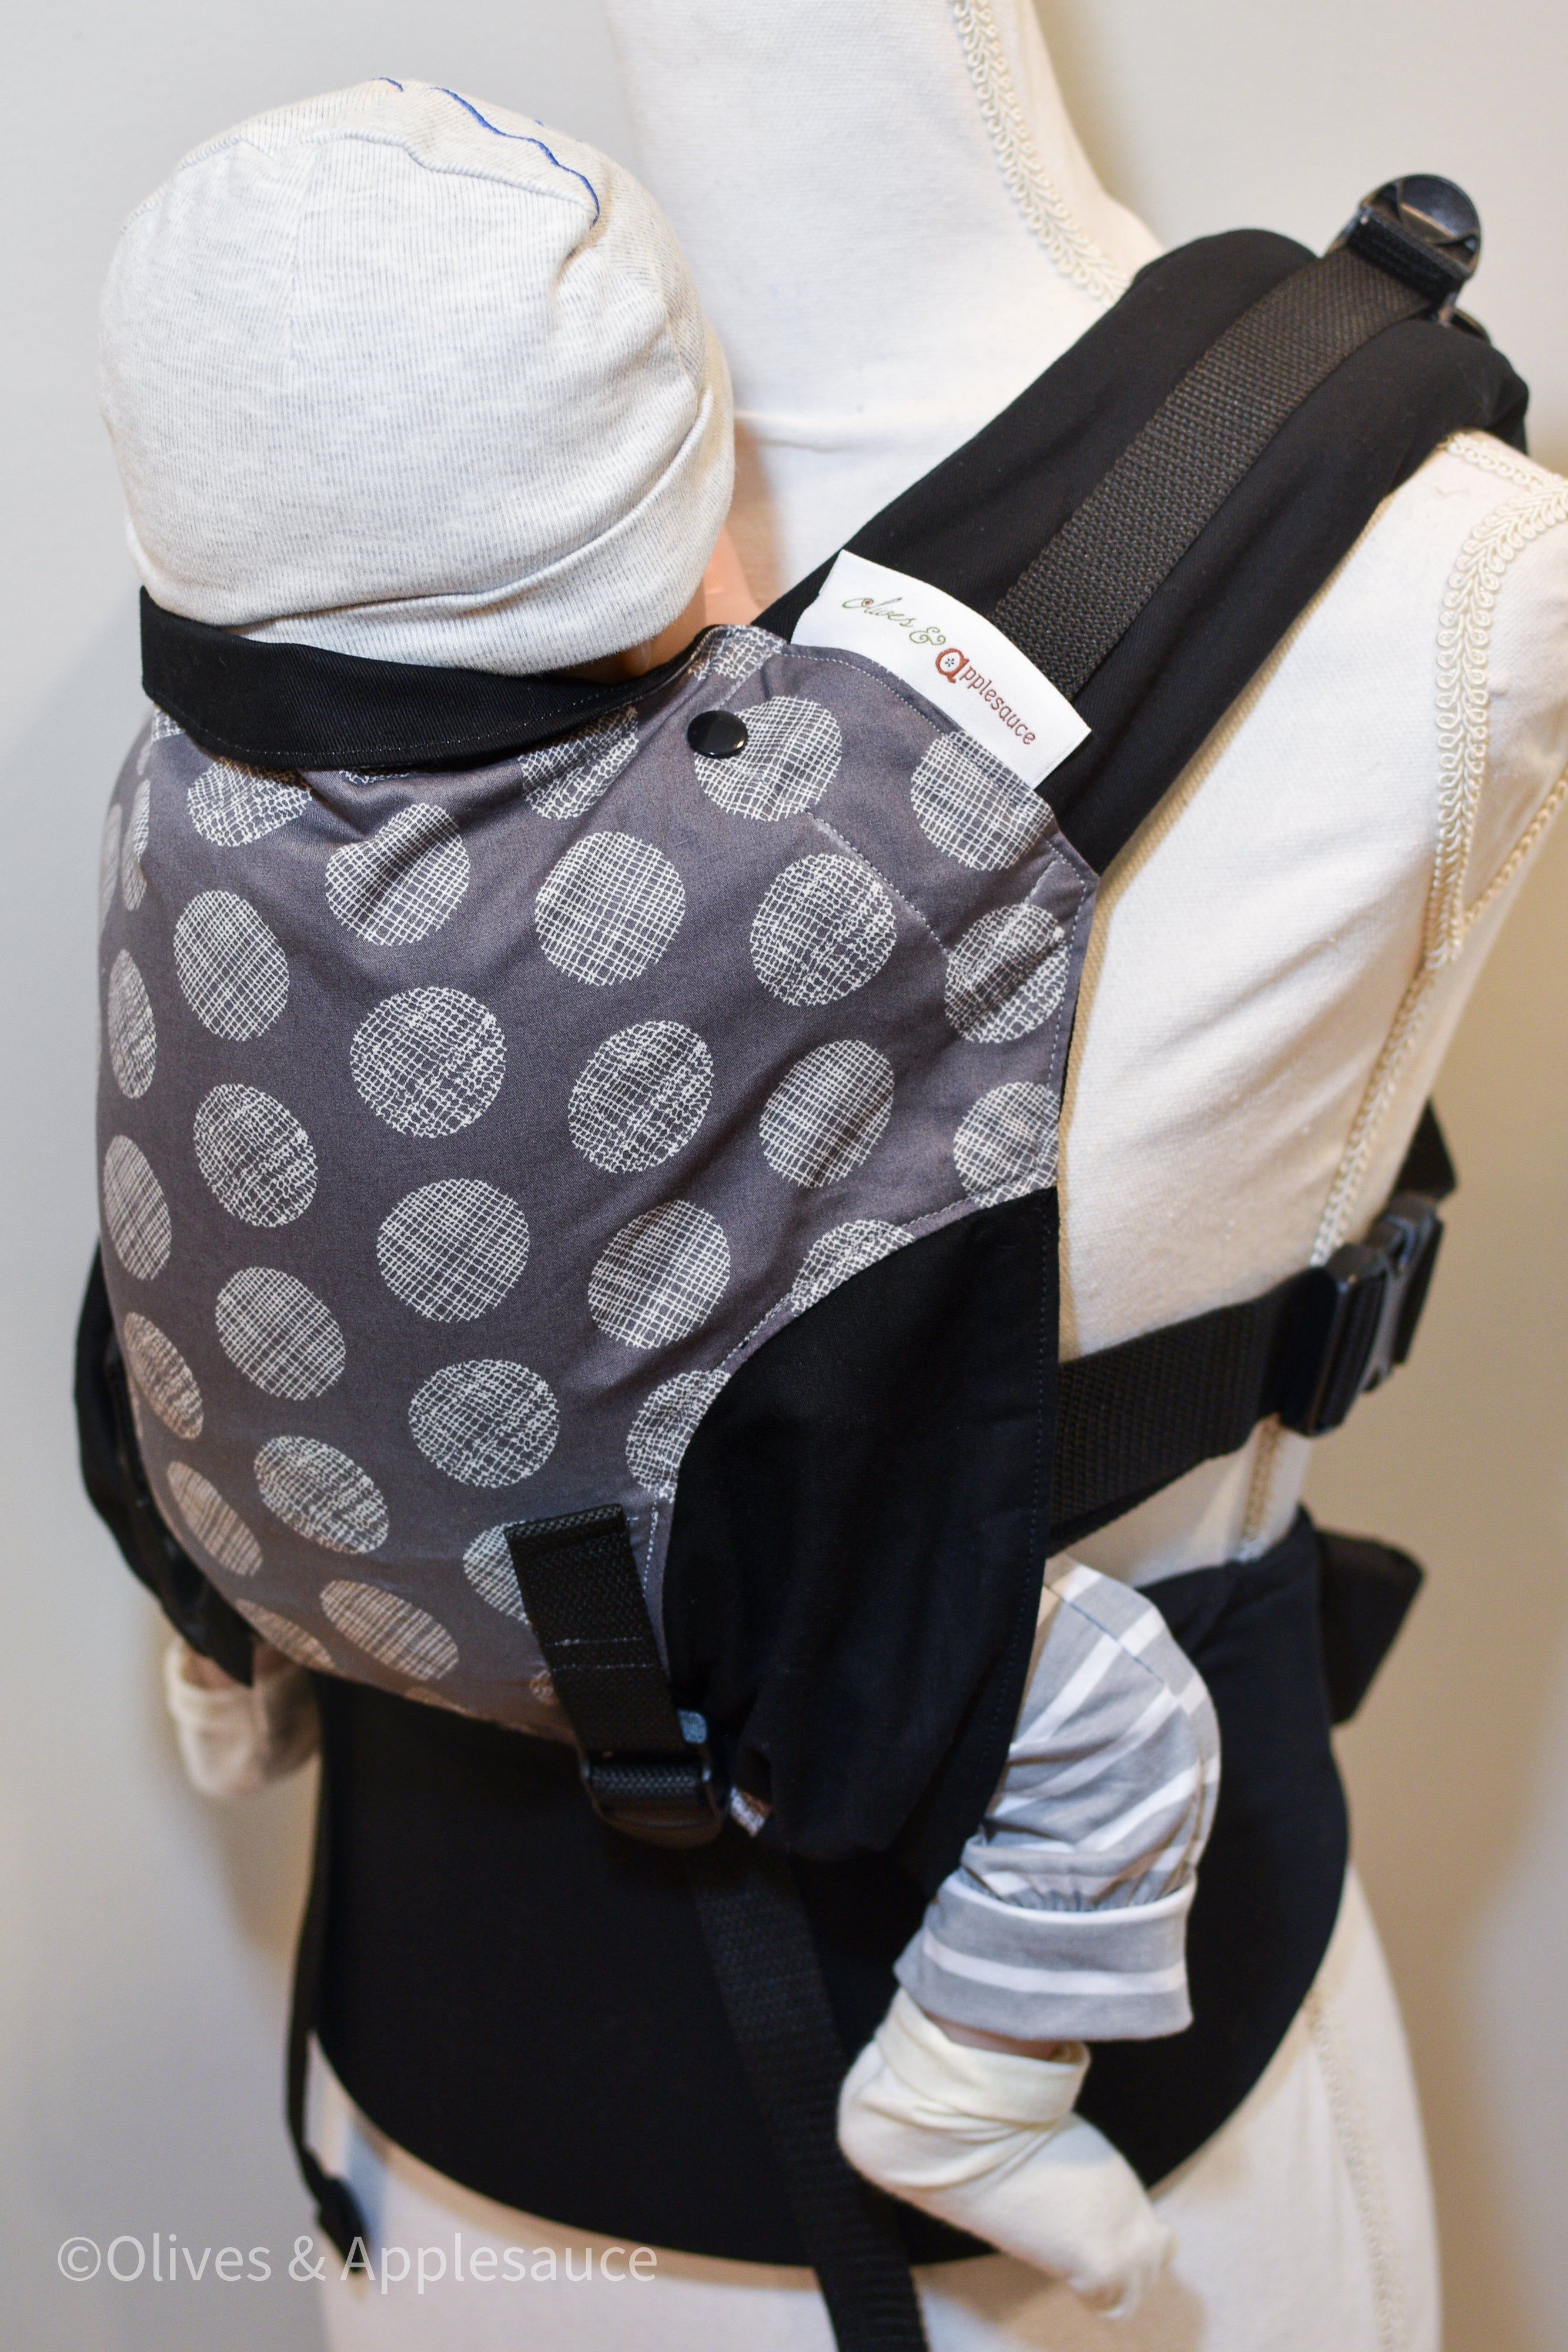 Olives and Applesauce Cross Hatch Olympia carrier on a dress form sized for a newborn. Hatch is a dark grey panel with white circles that have patterns of lines inside the circles. It is paired with black twill. Due to Olympia's unique design, the print is in an hour glass shape with twill sewn in to complete the body panel.